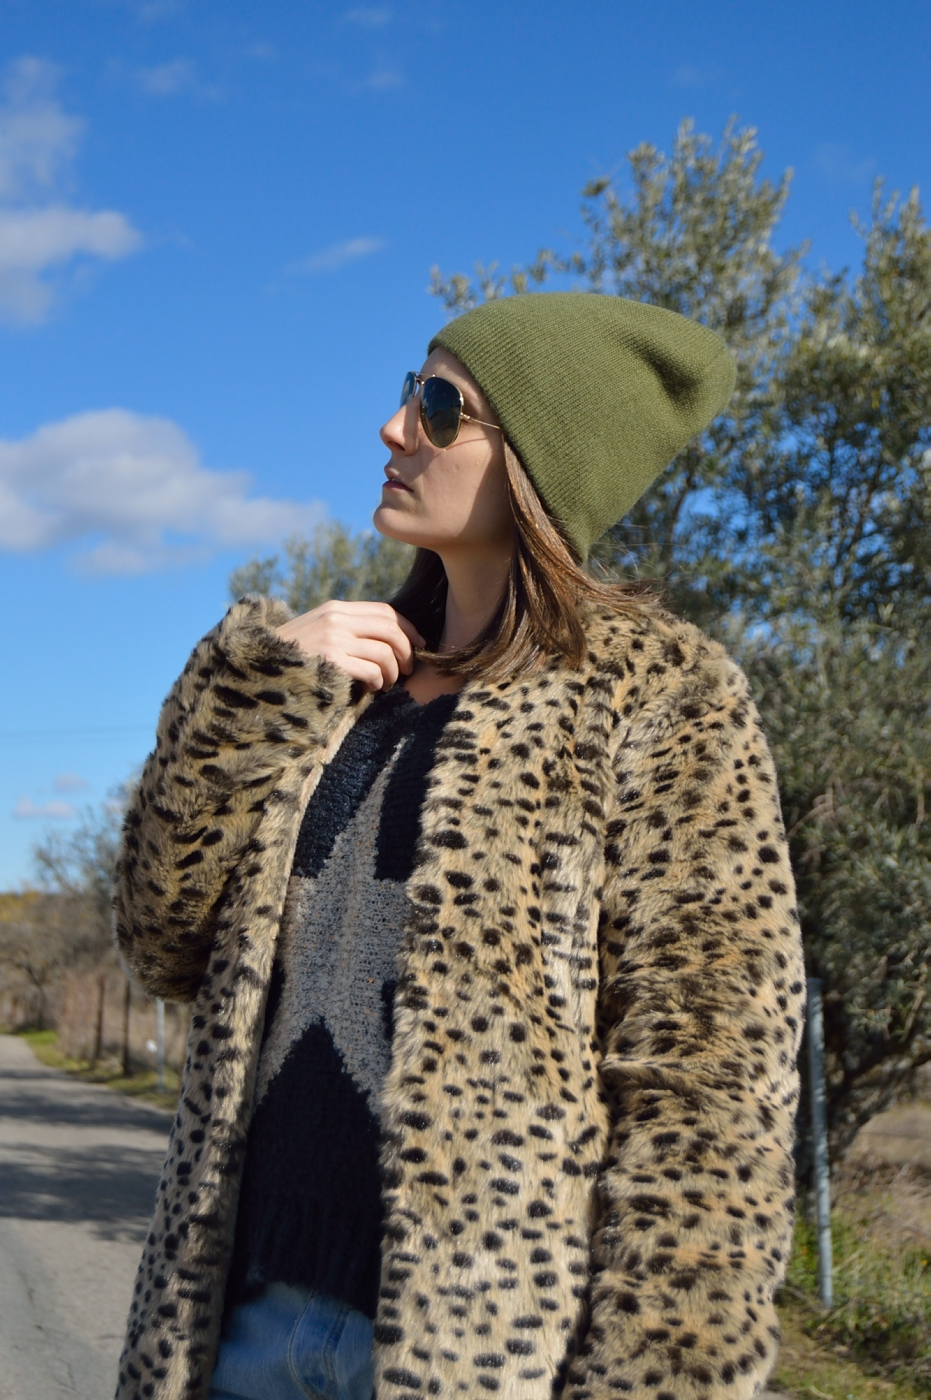 lara-vazquez-mad-lula-style-streetstyle-outfit-green-beanie